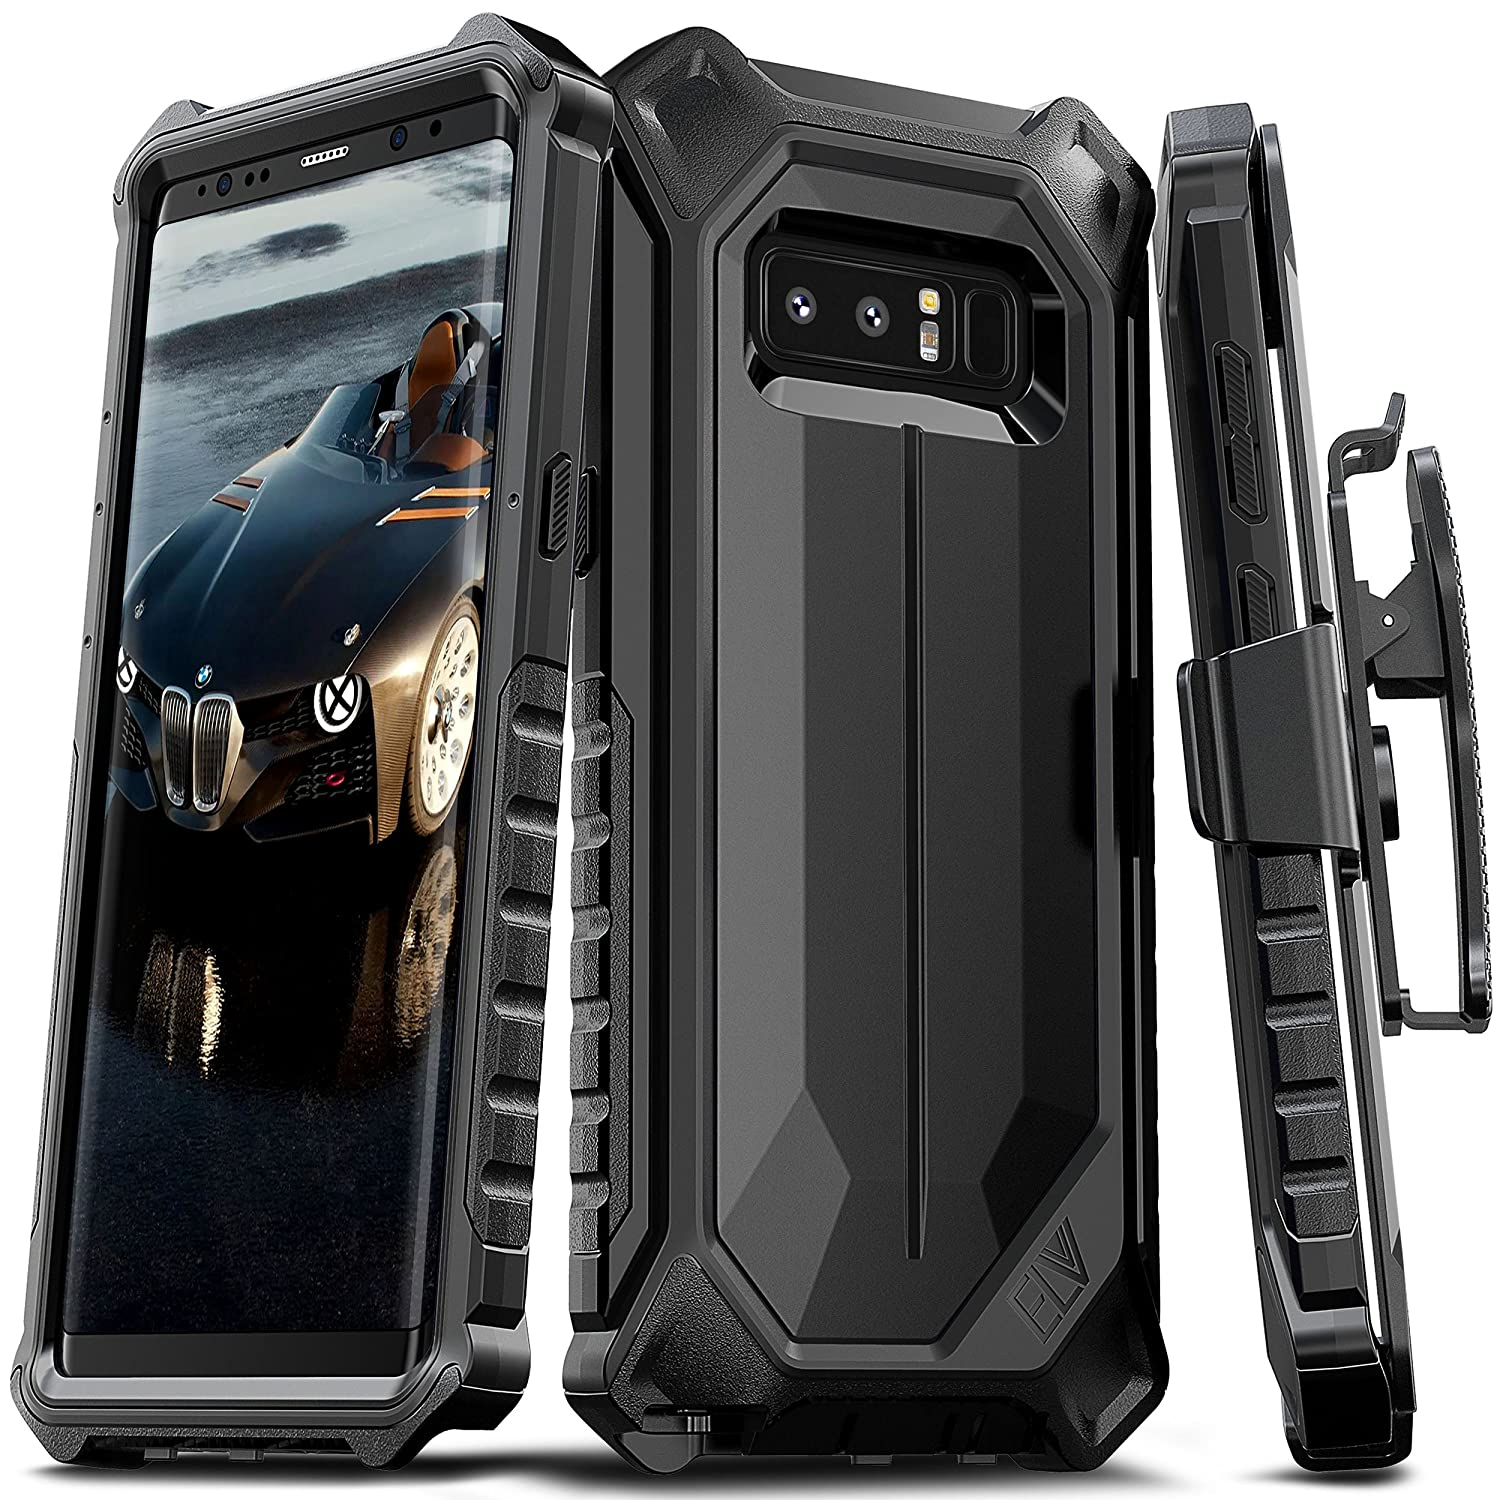 Samsung Galaxy Note 8 Case Elv Premium Holster Belt Xiaomi Redmi S2 Hardcase 360 Full Protective Clip Rugged With Kickstand For Black Cell Phones